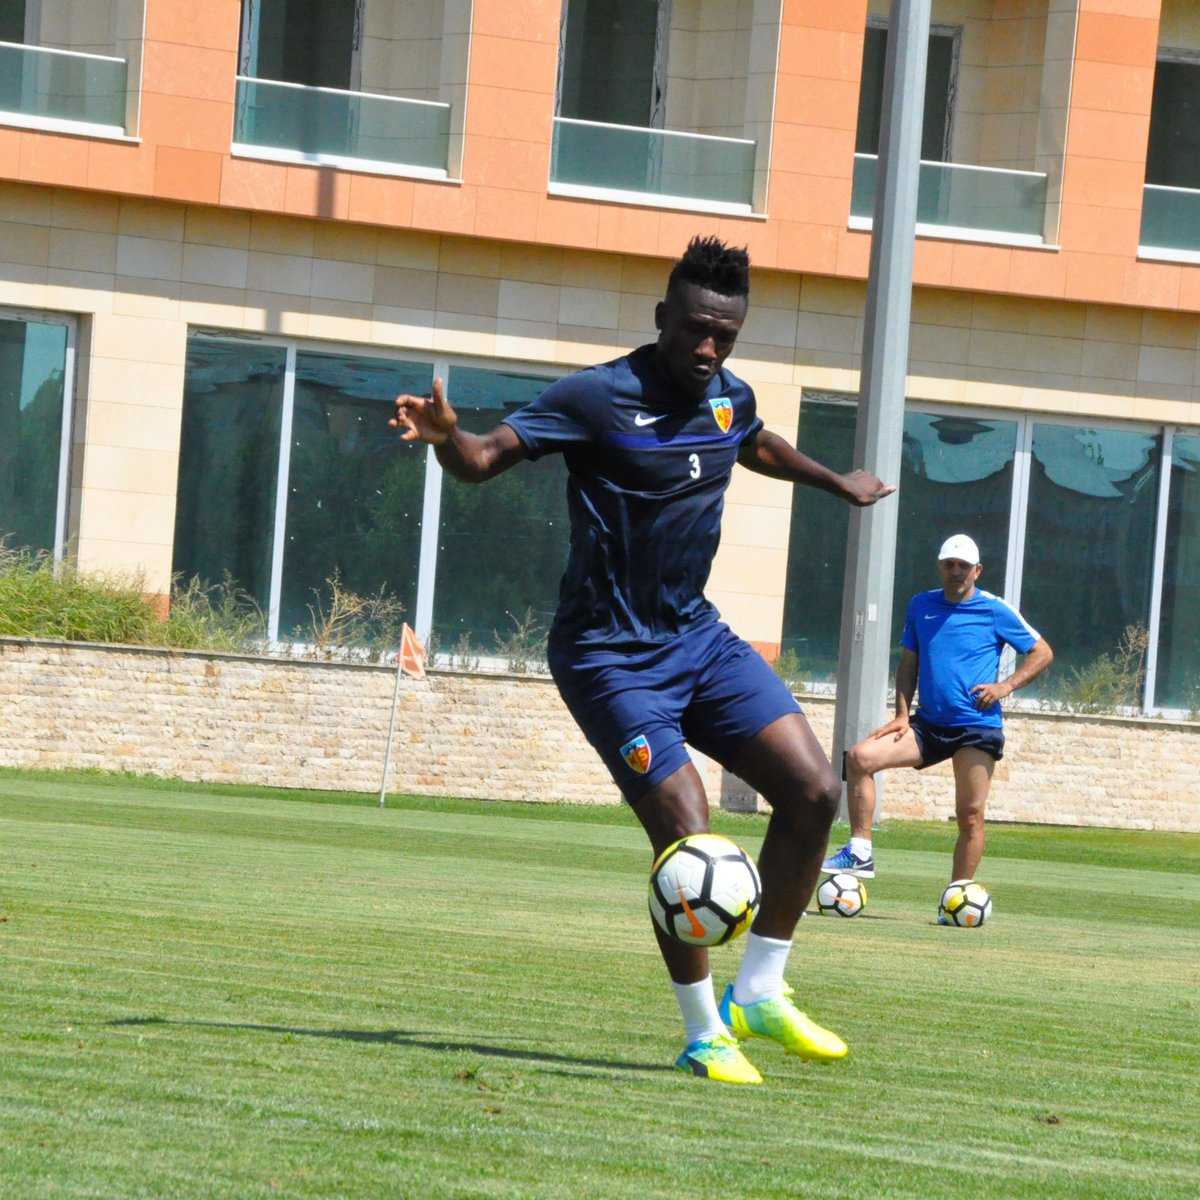 Asamoah Gyan returns to first team training after recovering from back problem